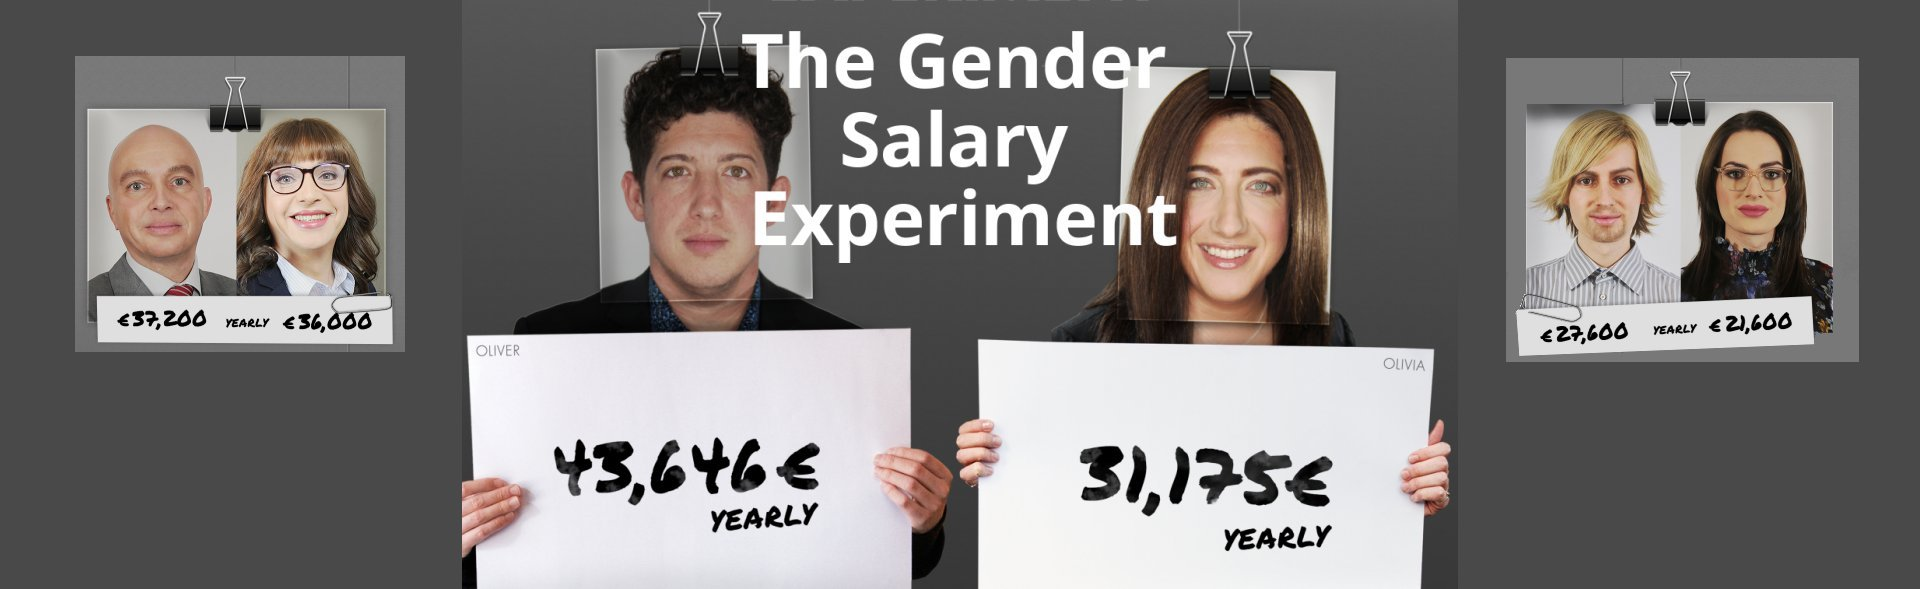 Das Gender Pay Gap Experiment